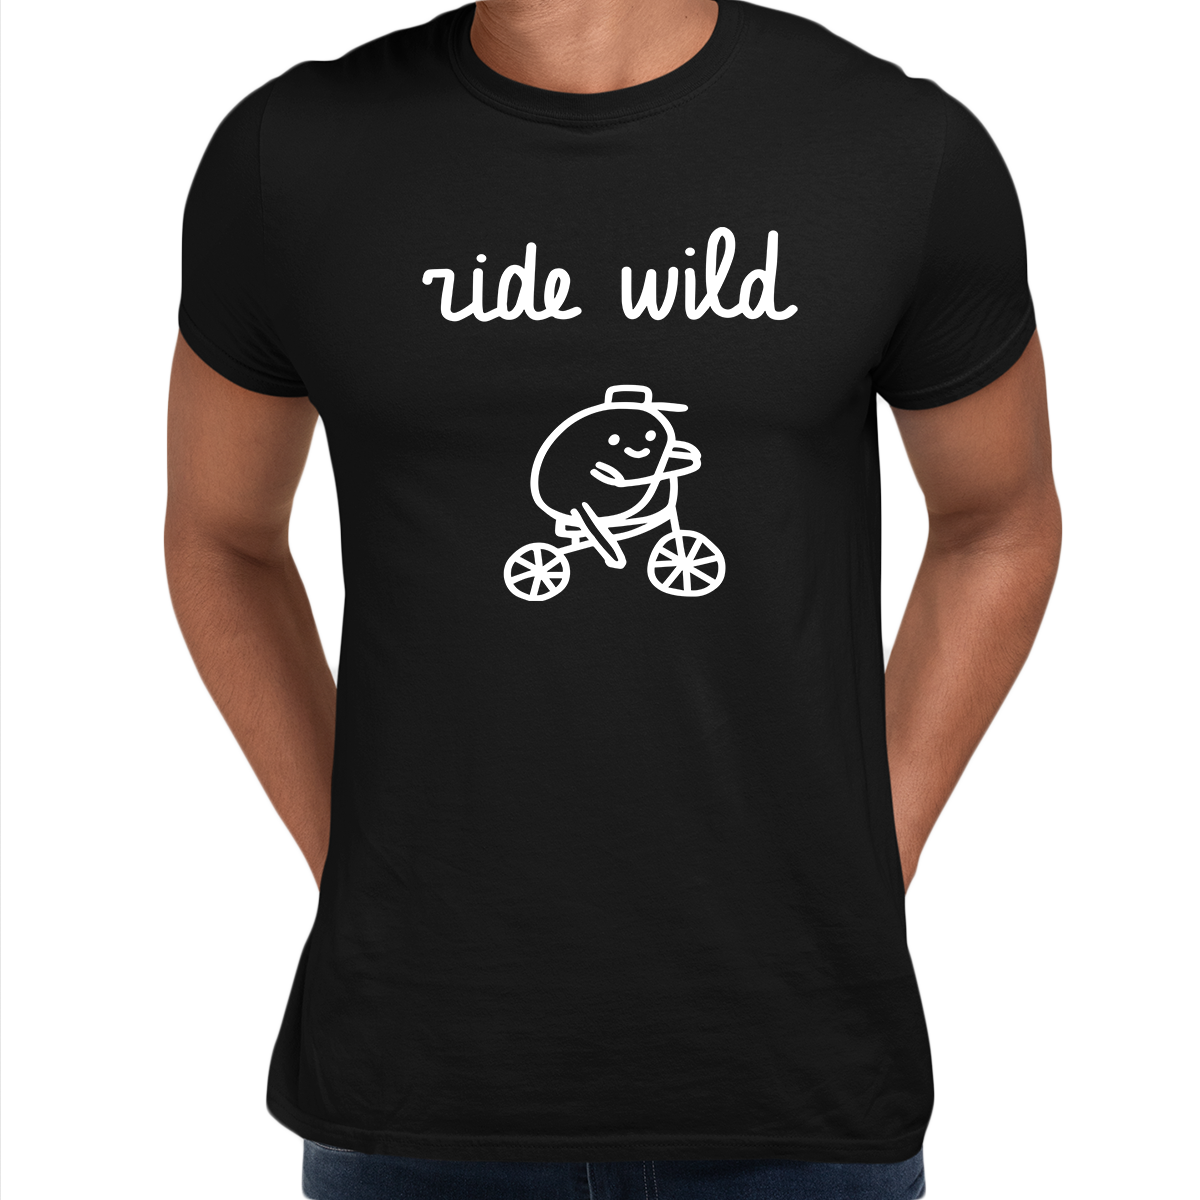 Ride Wild Funny Hipster Biking Apparel Crew Neck T-shirt Black